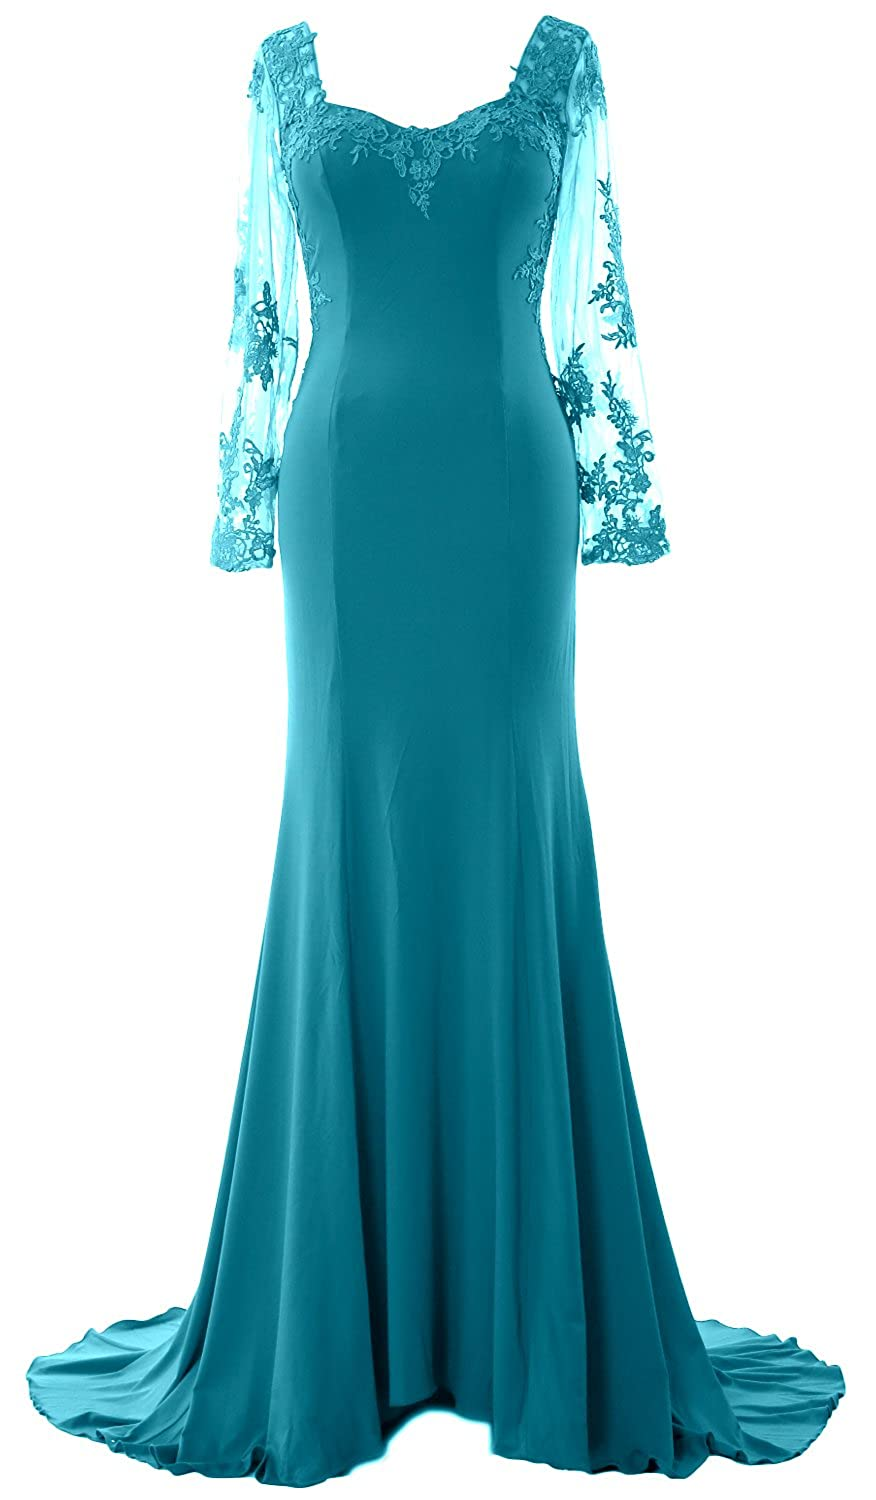 MACloth Women Mermaid Evening Gown Long Sleeve Lace Jersey Formal Prom Dress